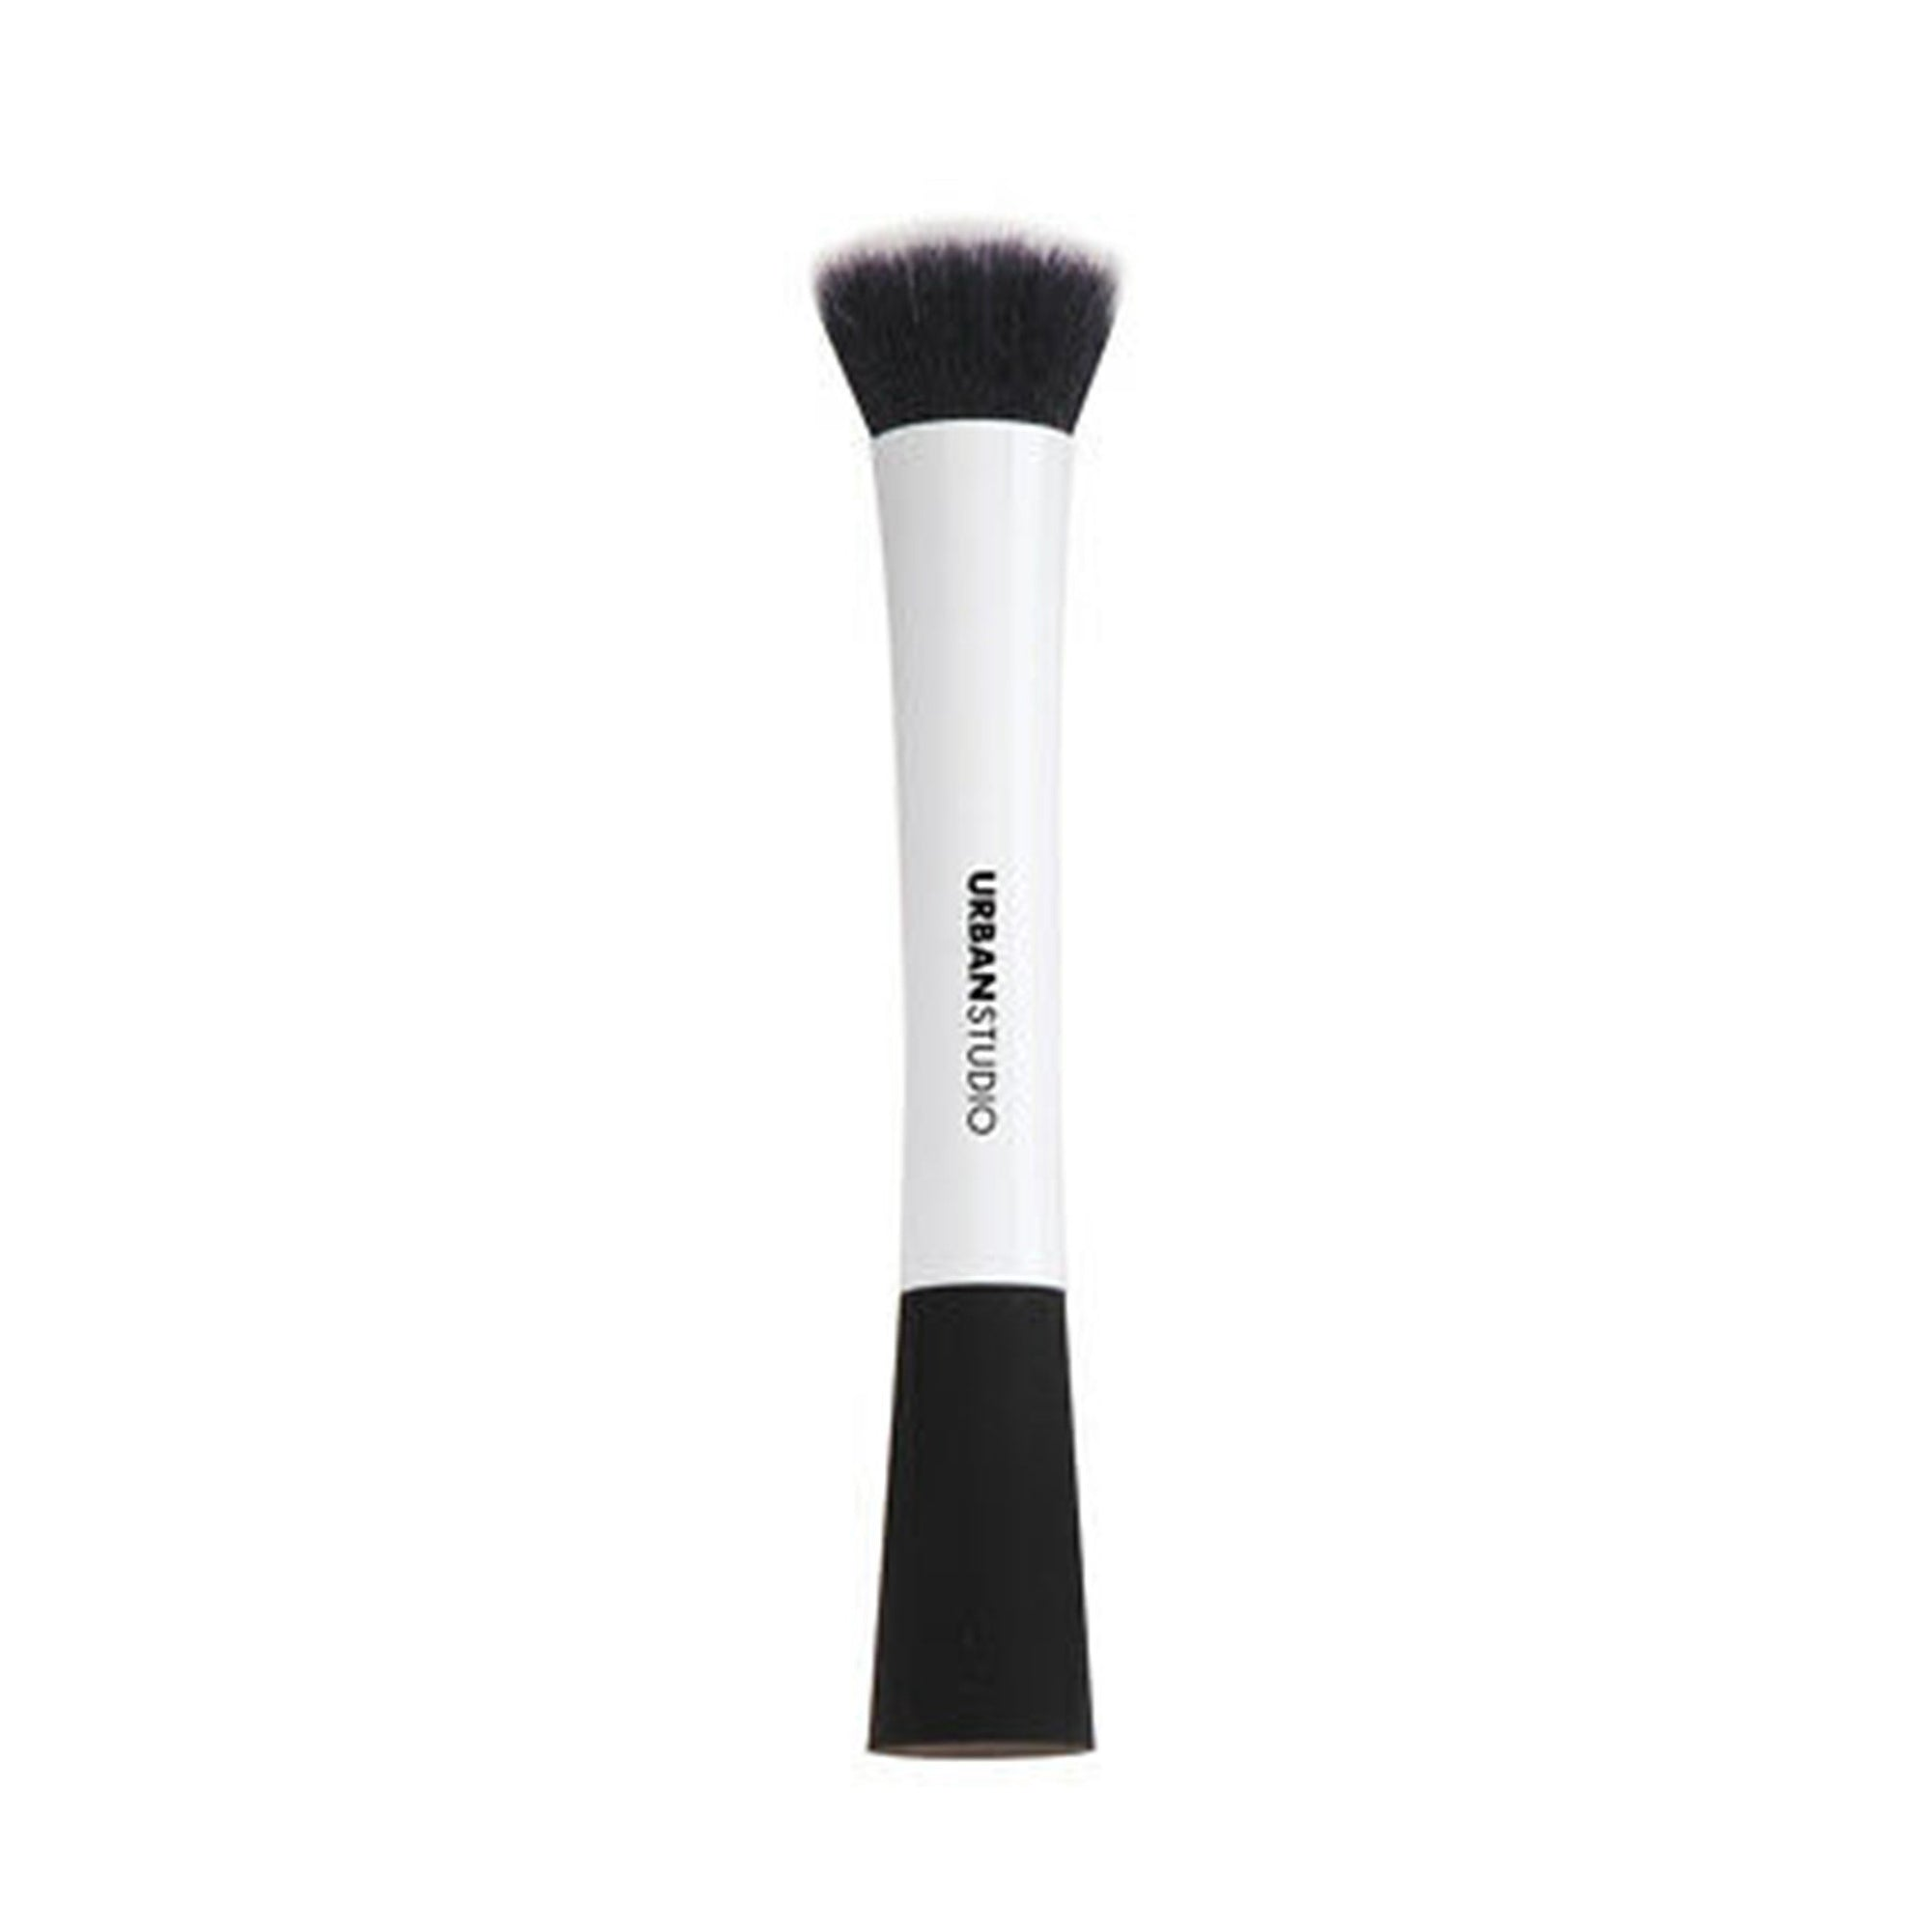 Cala Urban Studio Stippling Brush